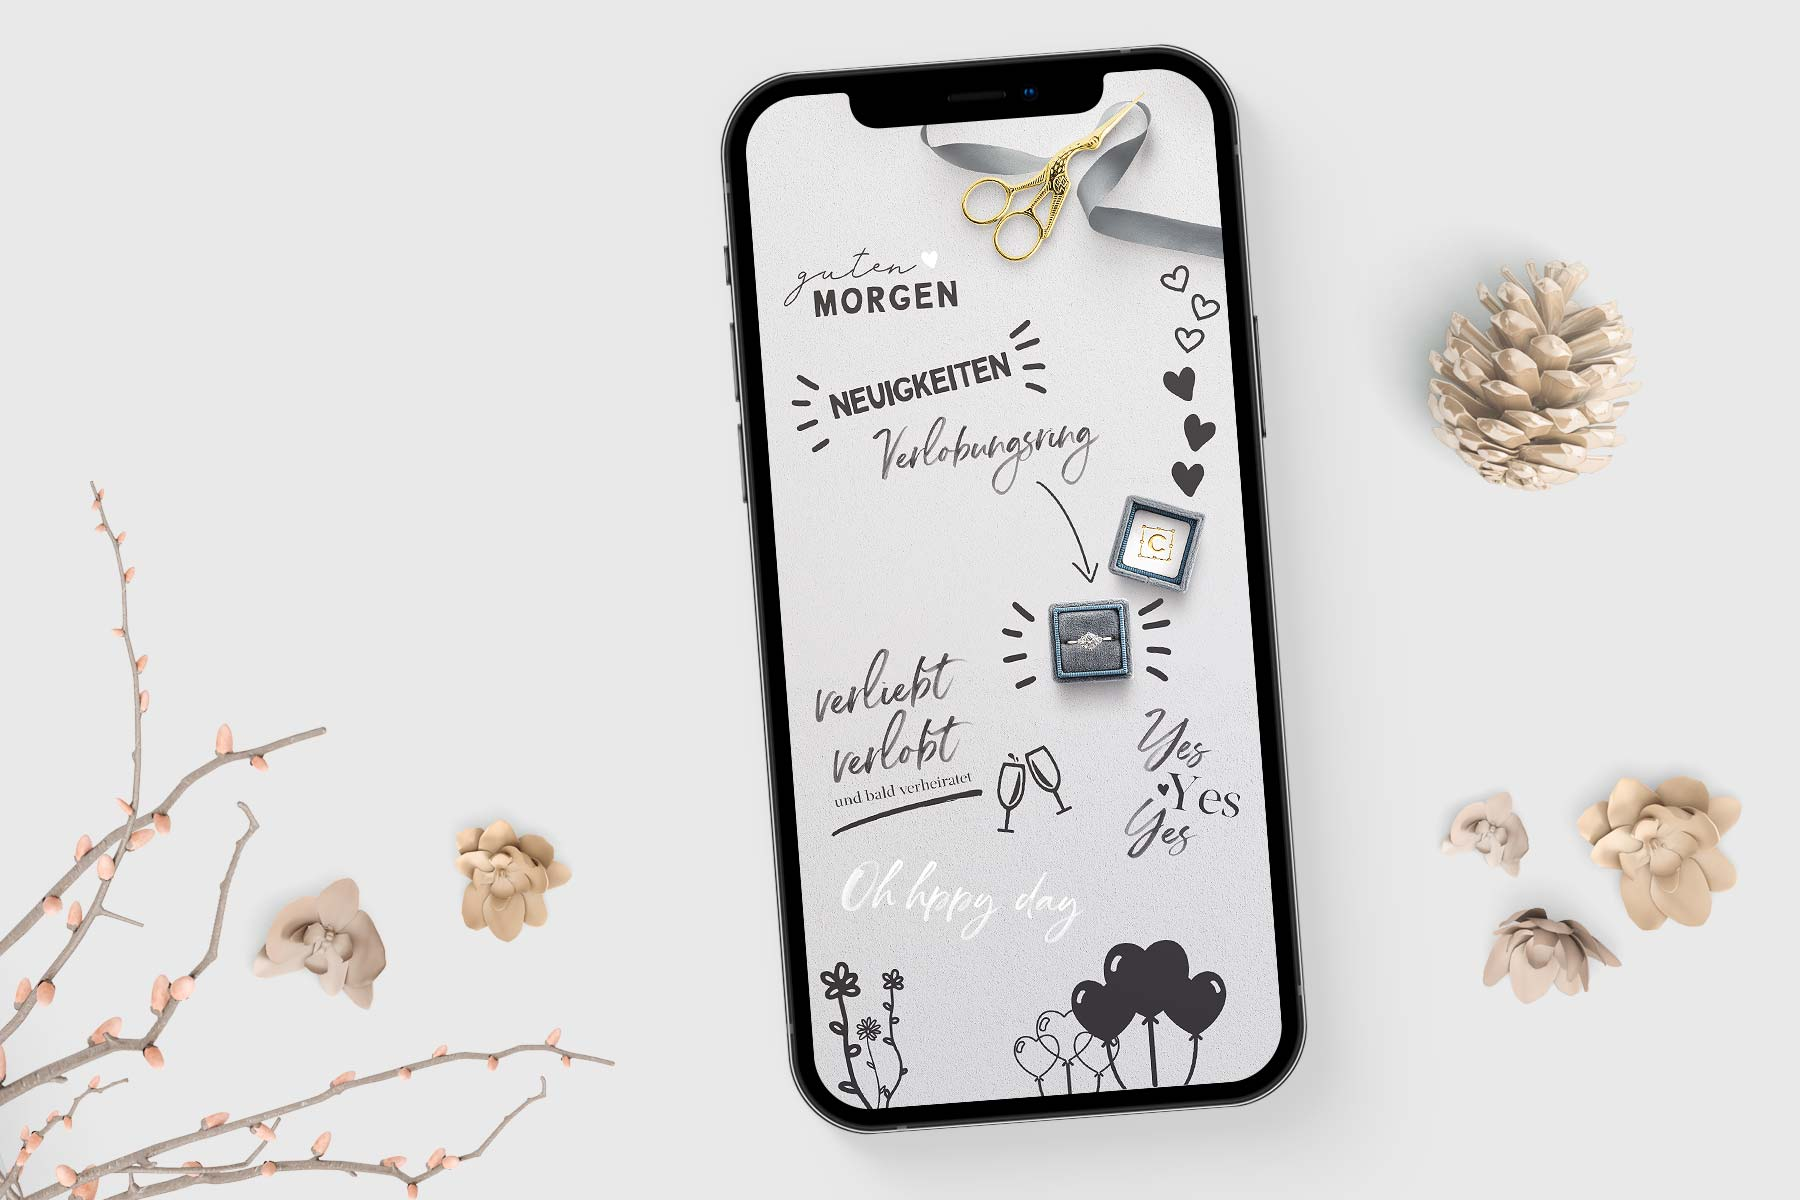 1632464453 28 Free wedding story stickers to download - Free wedding story stickers to download